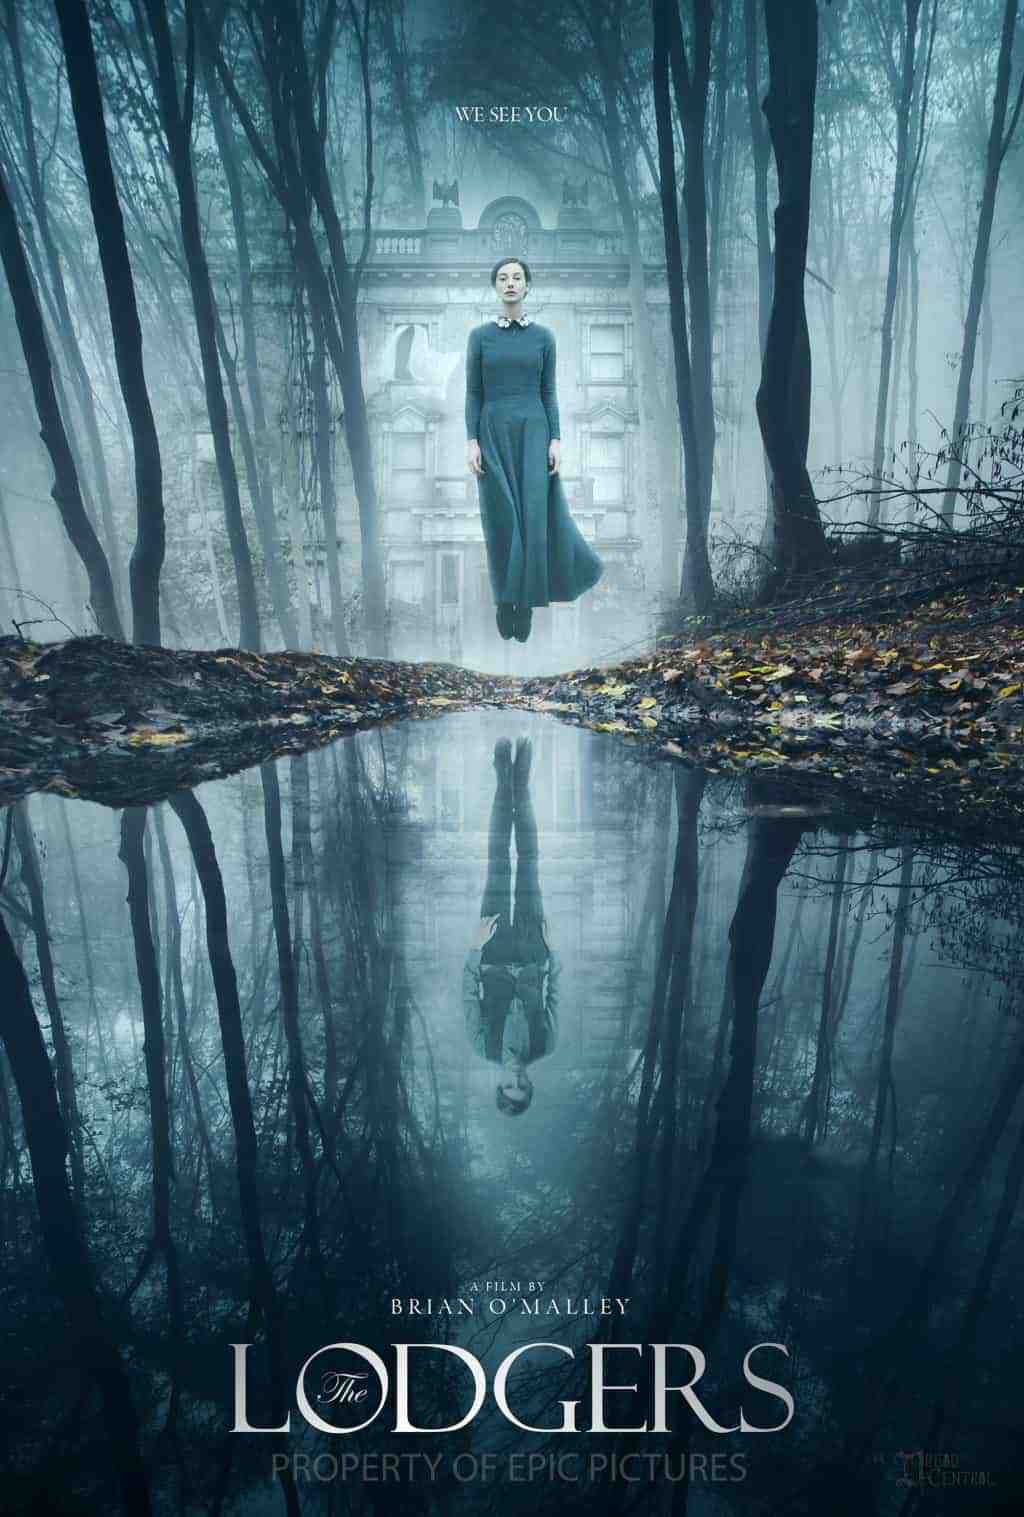 A ghostly figure of a woman hovers above a lake from film The Lodgers filmed at Loftus Hall